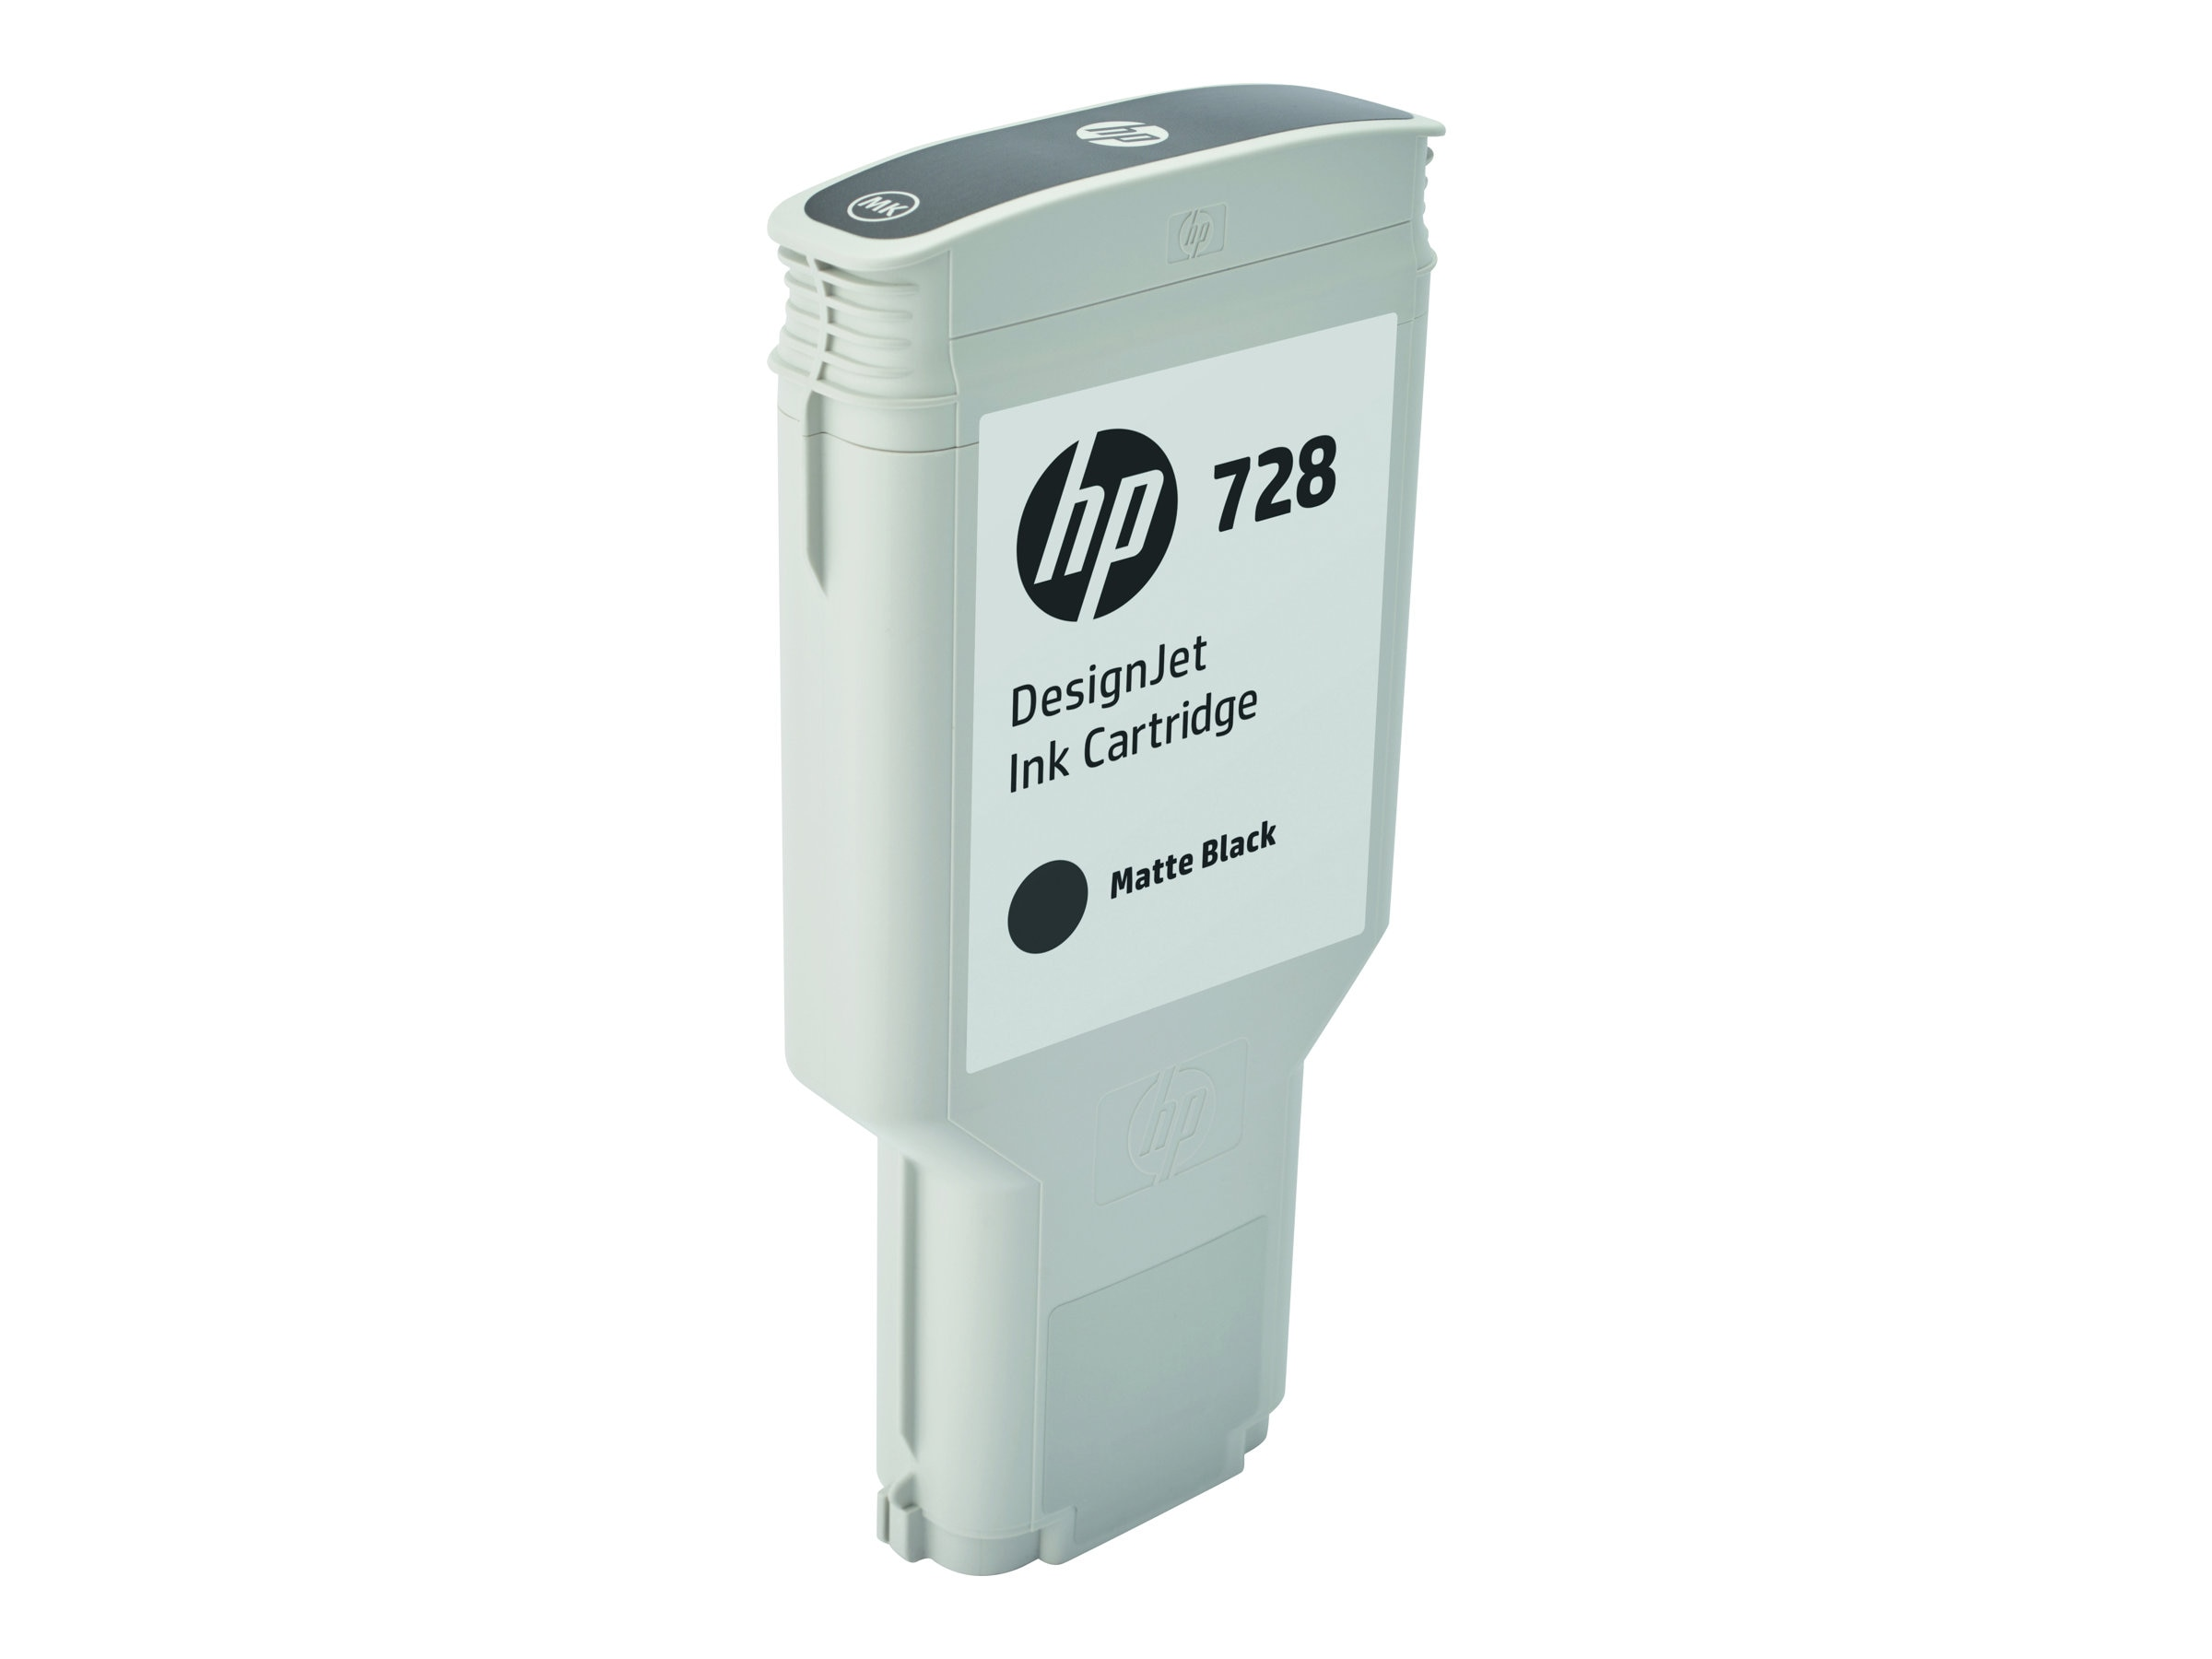 HP 728 (F9J68A) 130ml Matte Black Designjet Ink Cartridge for HP DesignJet T730 & T830 Series